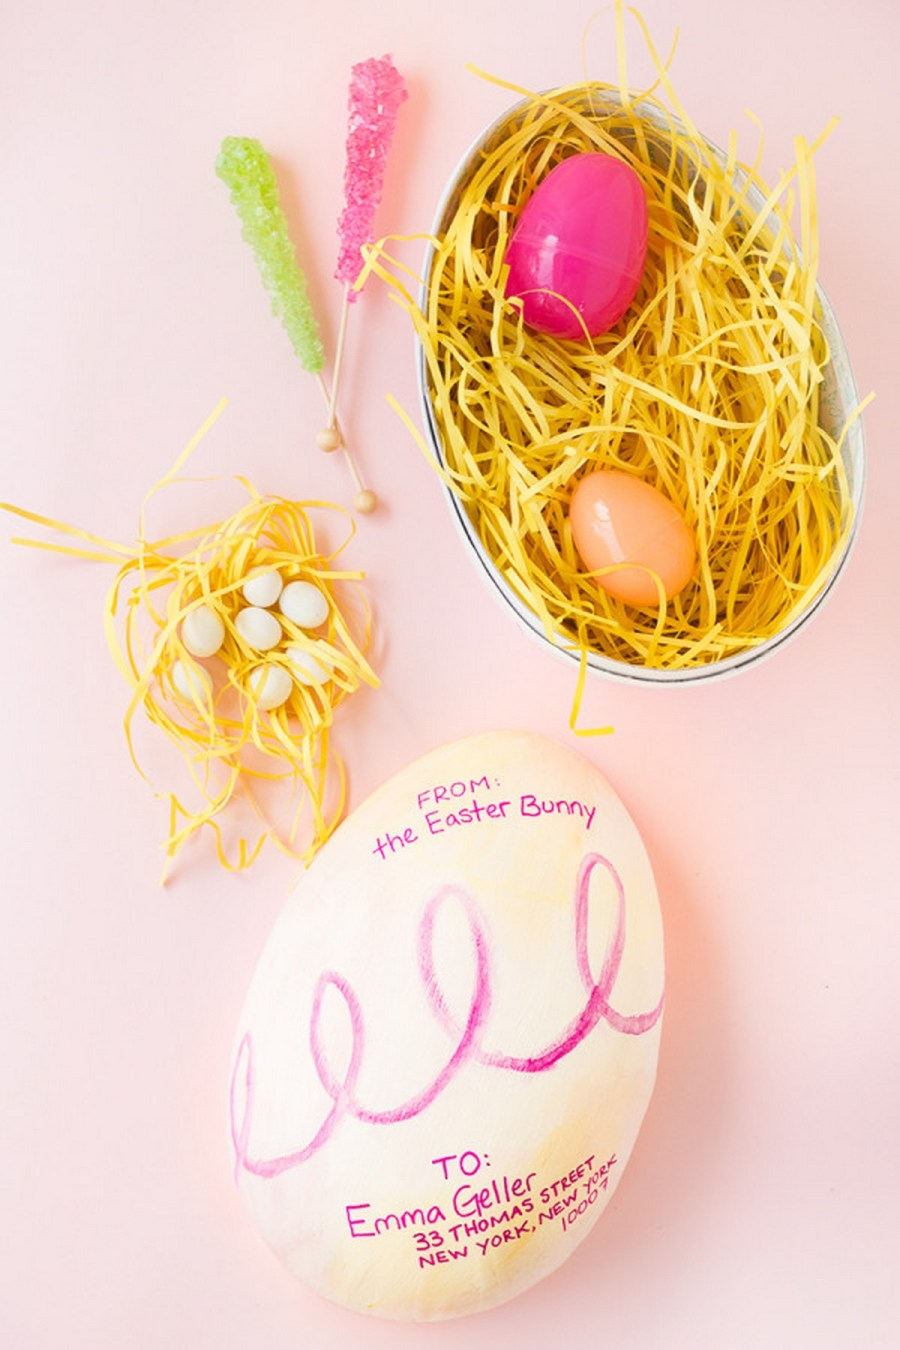 Need fun, new Easter basket ideas? Spruce things up with these DIY options!